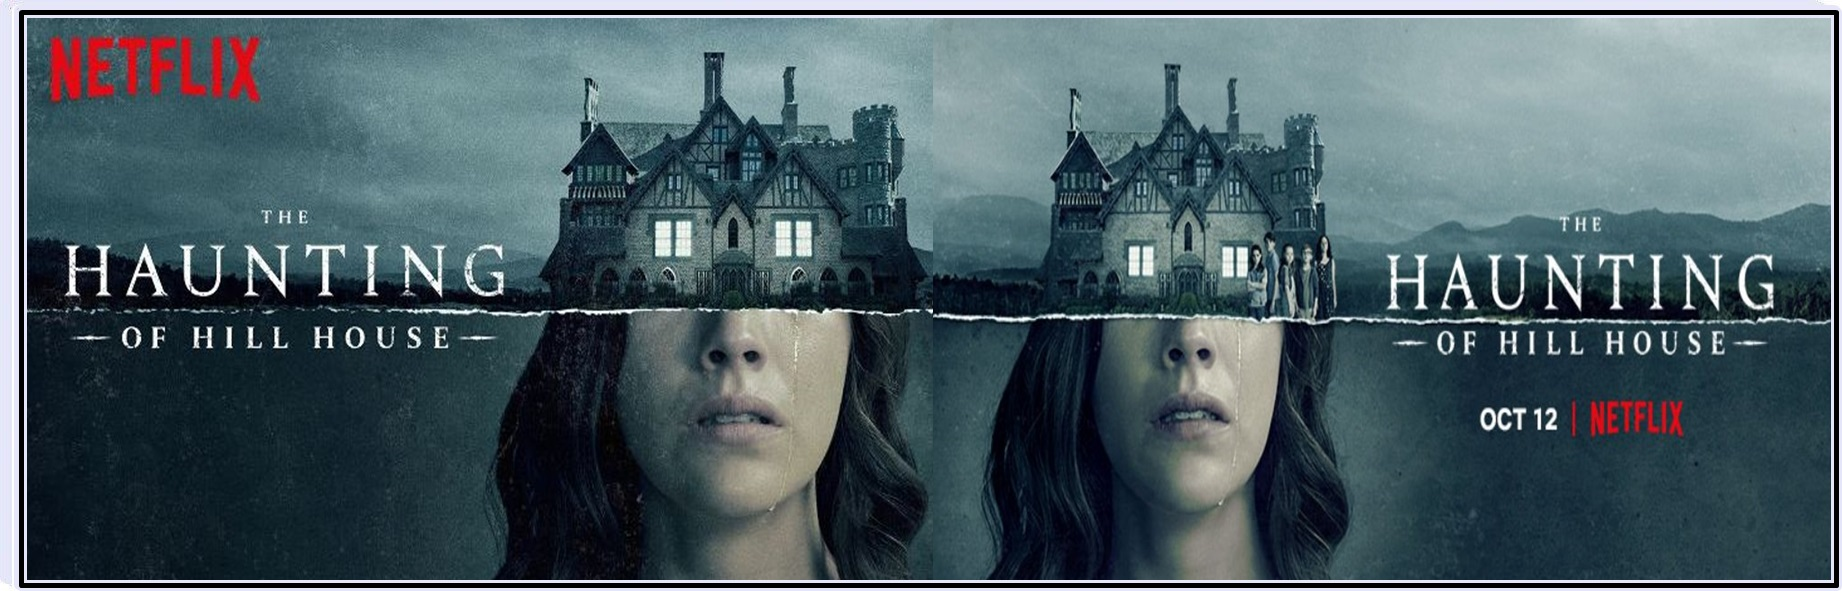 The Haunting of Hill House 2018 S01 Complete English 720p - 480p BRRip ESubs